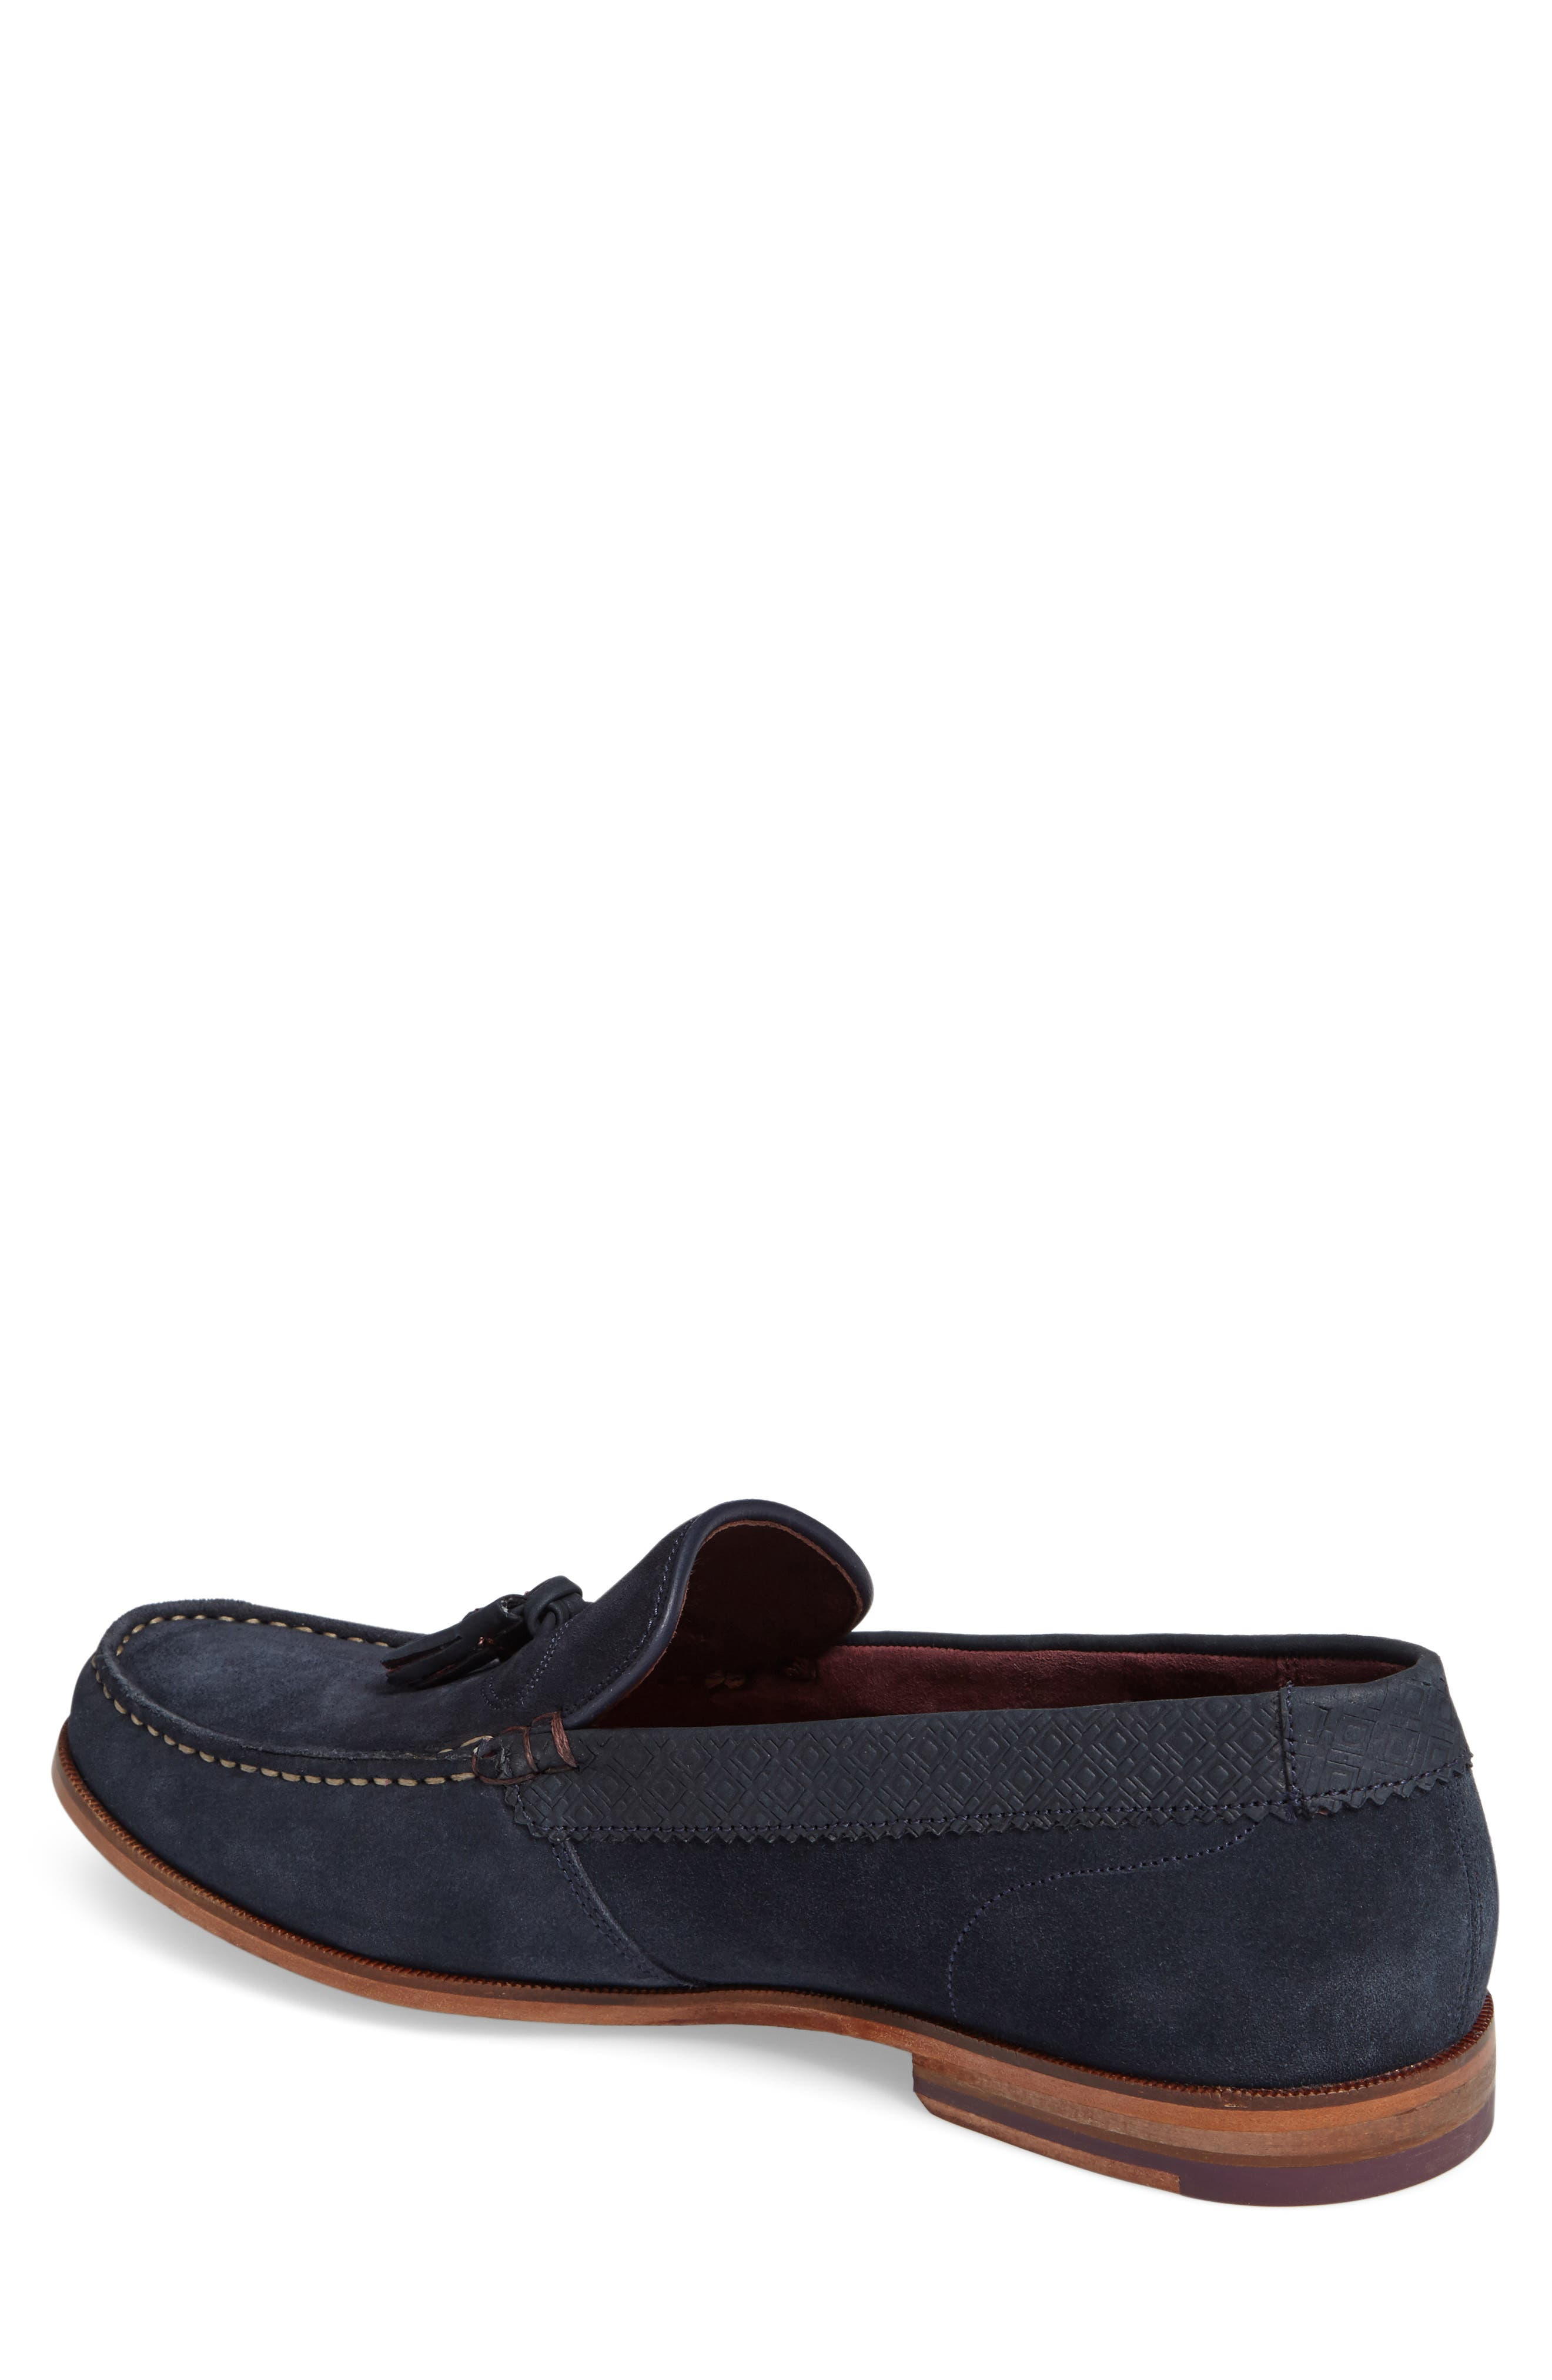 Dougge Tassel Loafer,                             Alternate thumbnail 10, color,